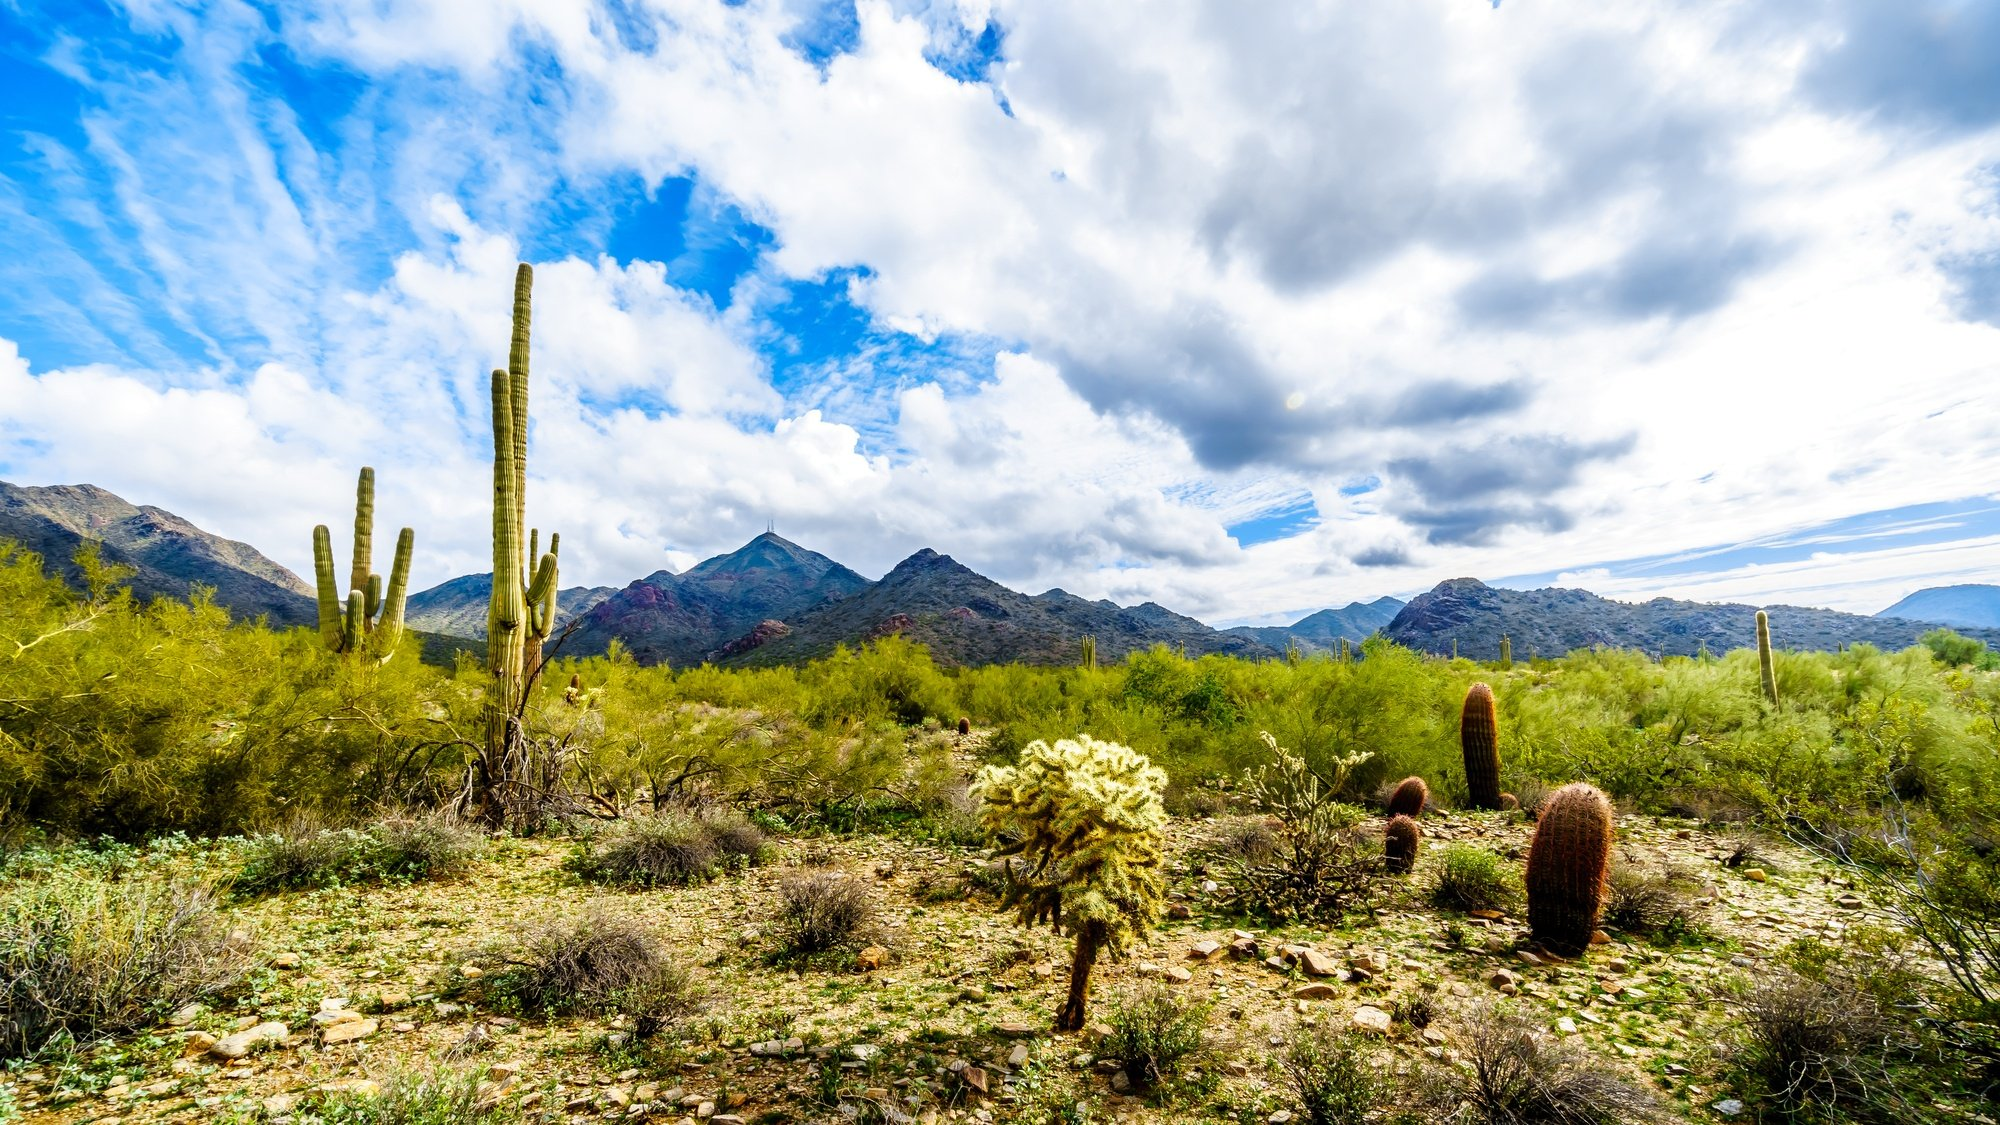 Scottsdale outdoor activities abound in the MacDowell Mountain Preserve